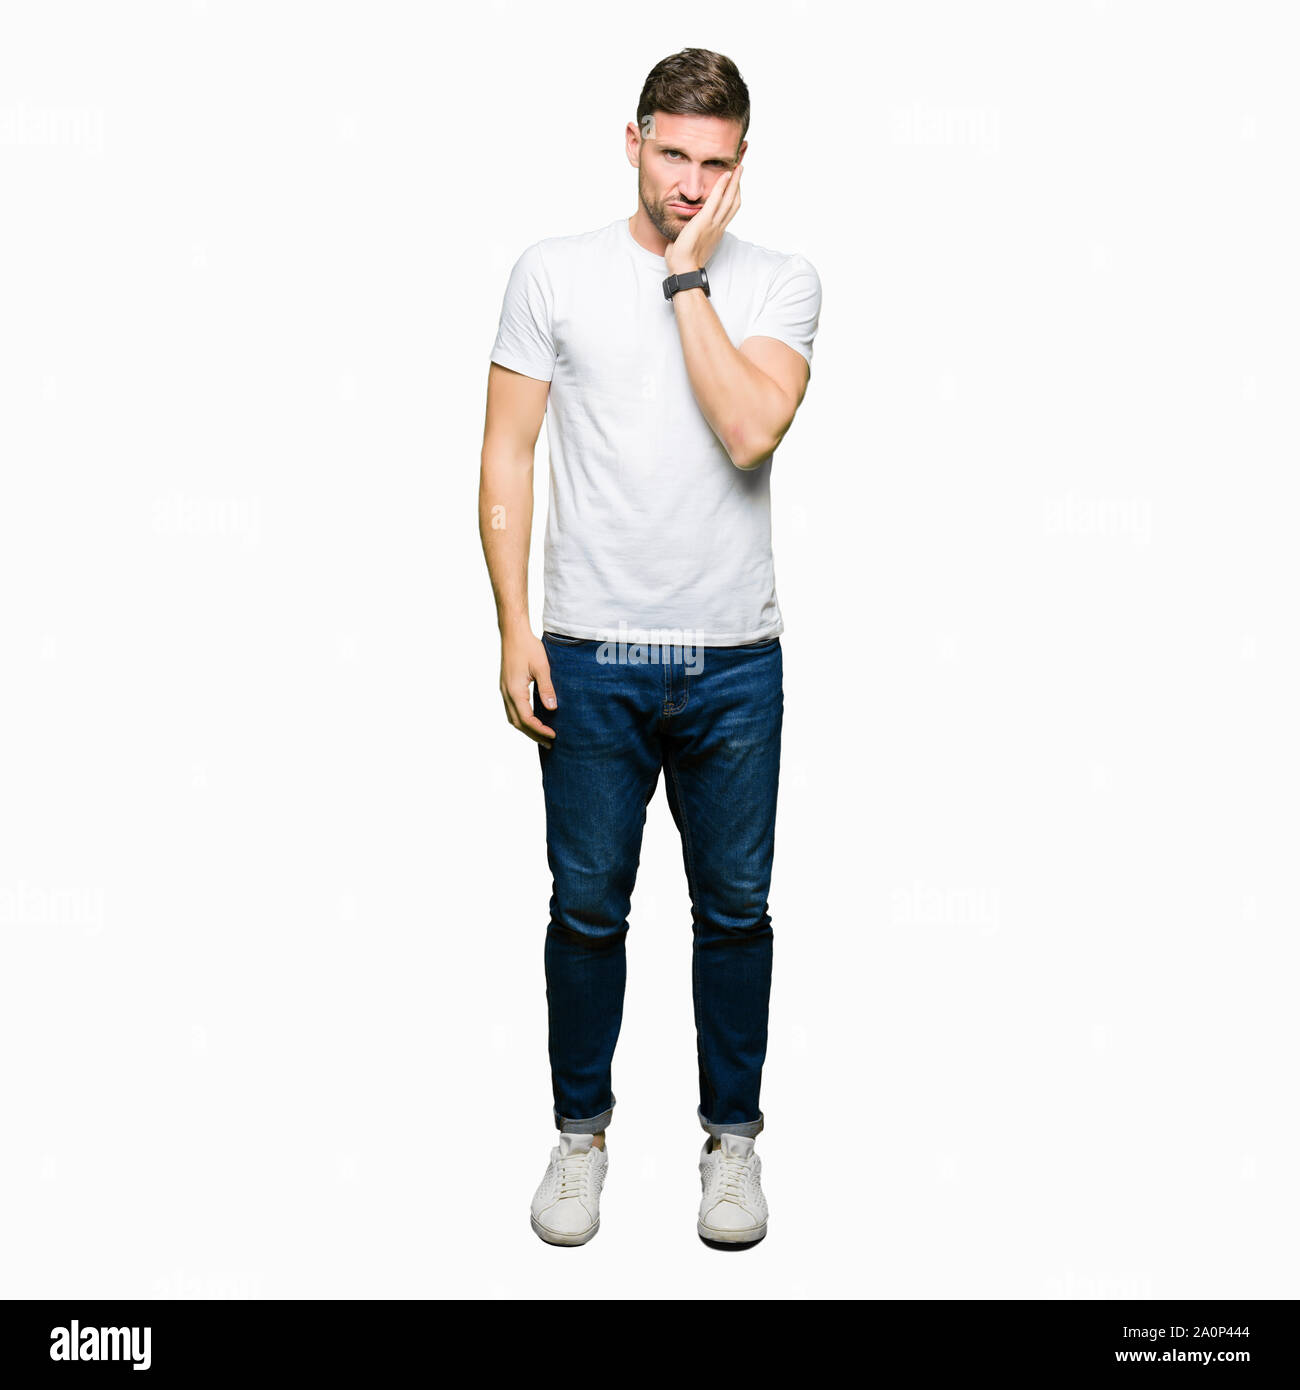 Handsome man wearing casual white t-shirt thinking looking tired and bored with depression problems with crossed arms. Stock Photo